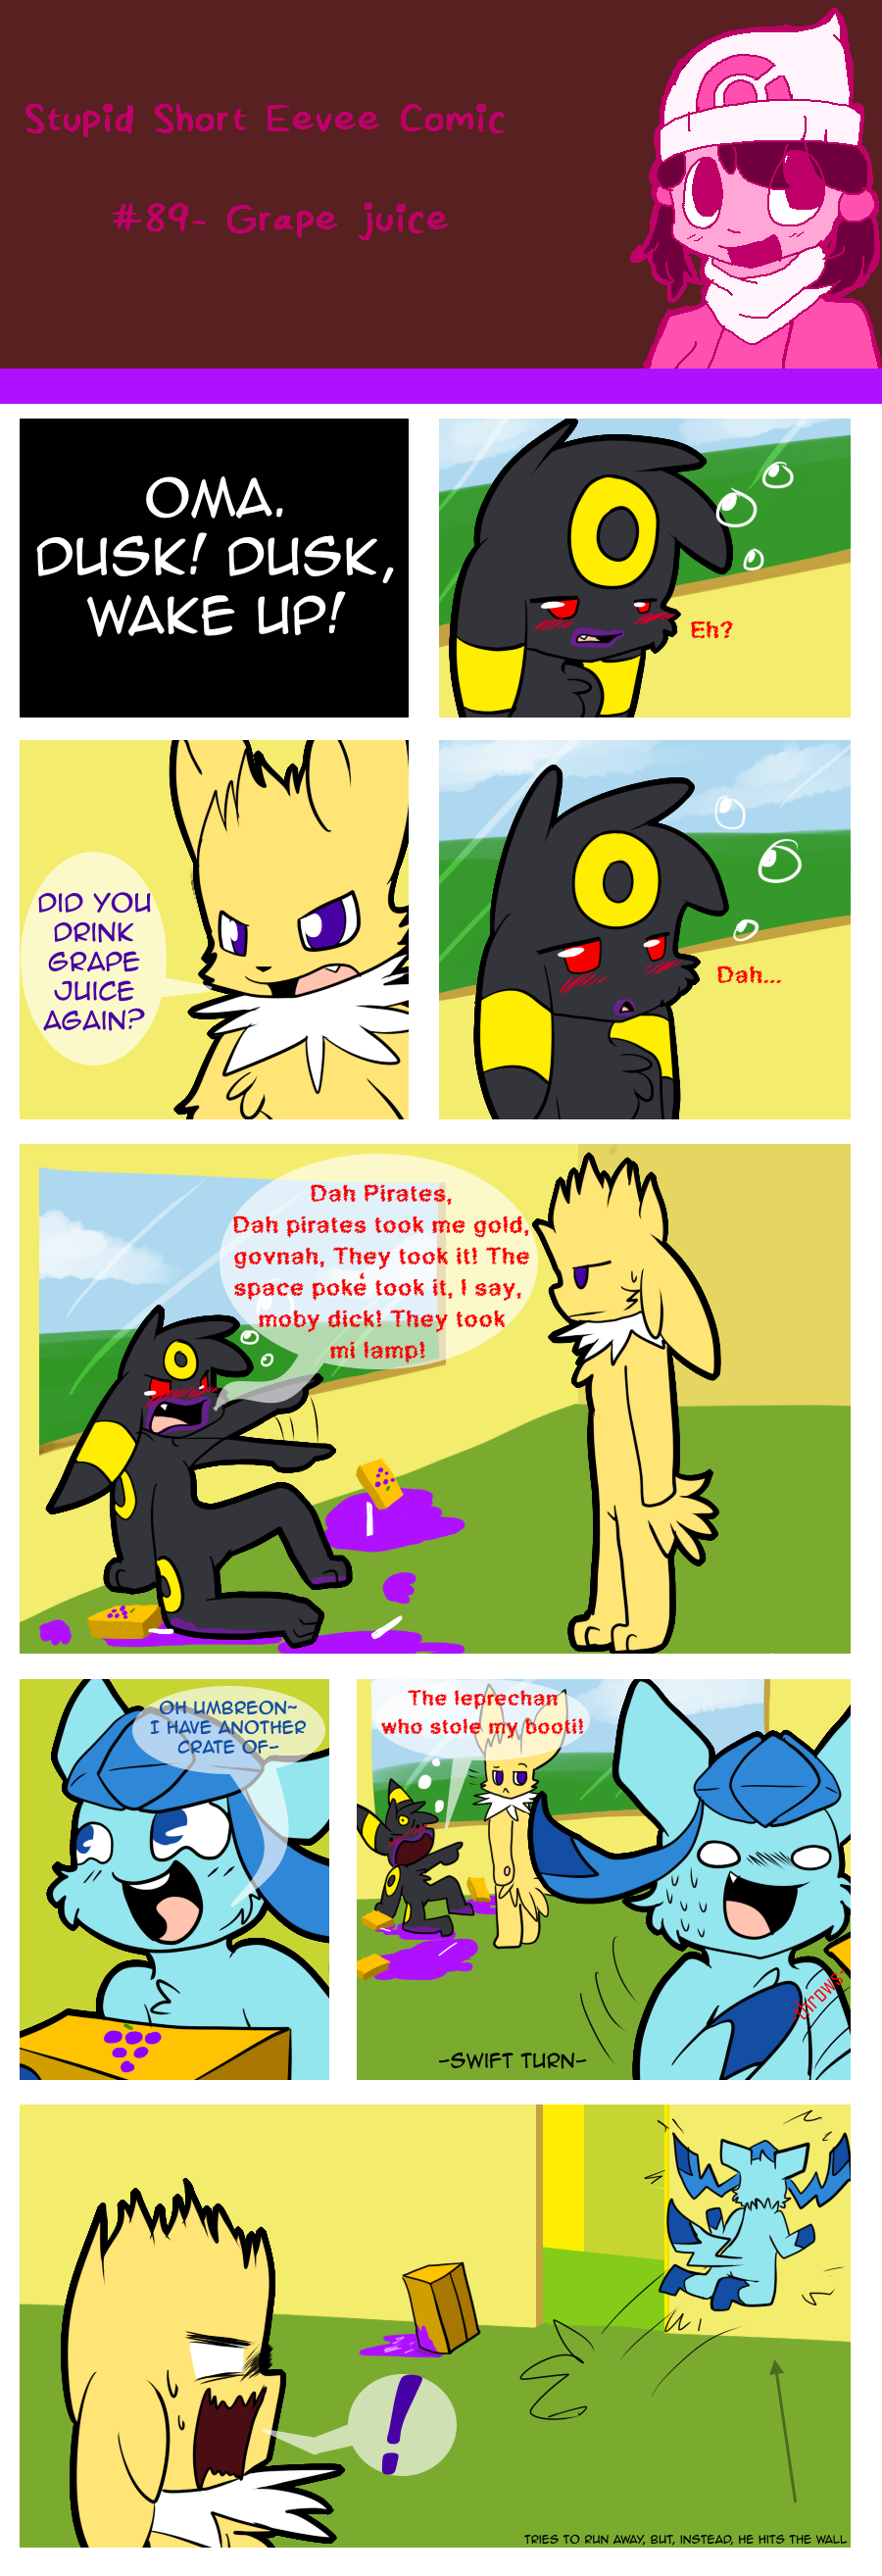 The most normal eeveelution is Dawn, who, has almost